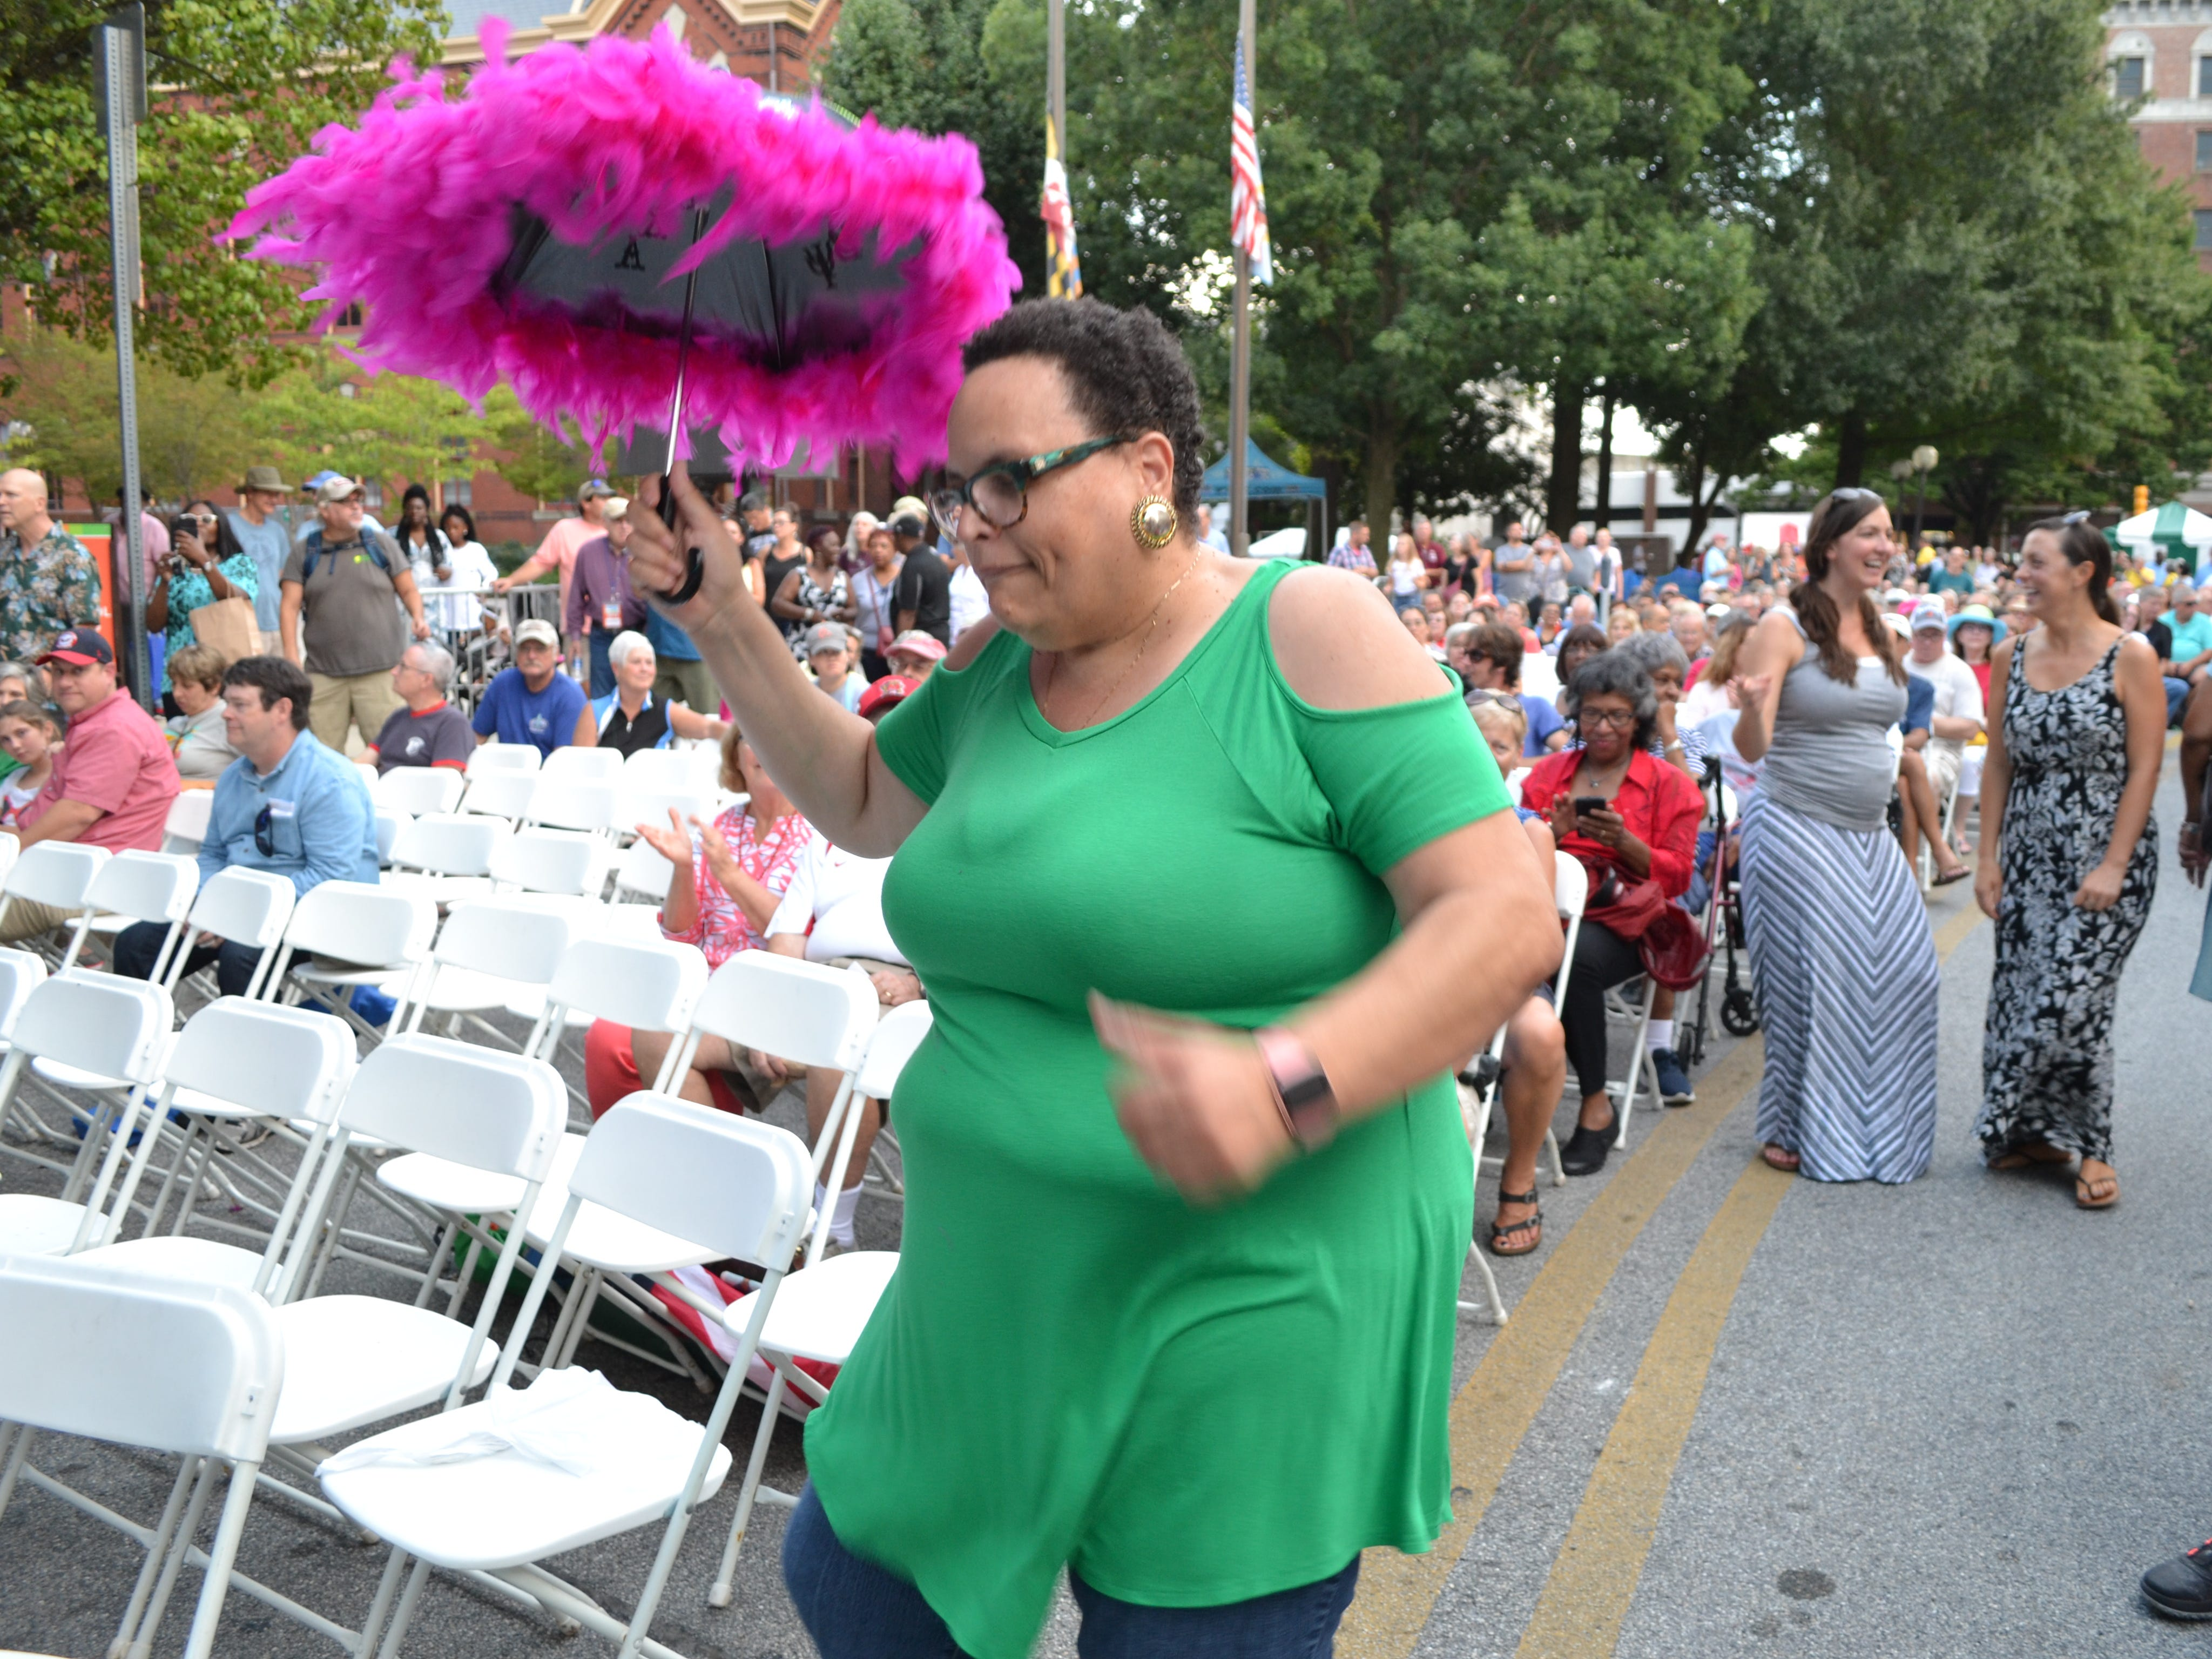 Adrienne Webber of Fruitland dances to the Treme Brass Band at the National Folk Festival in Salisbury on Friday night.